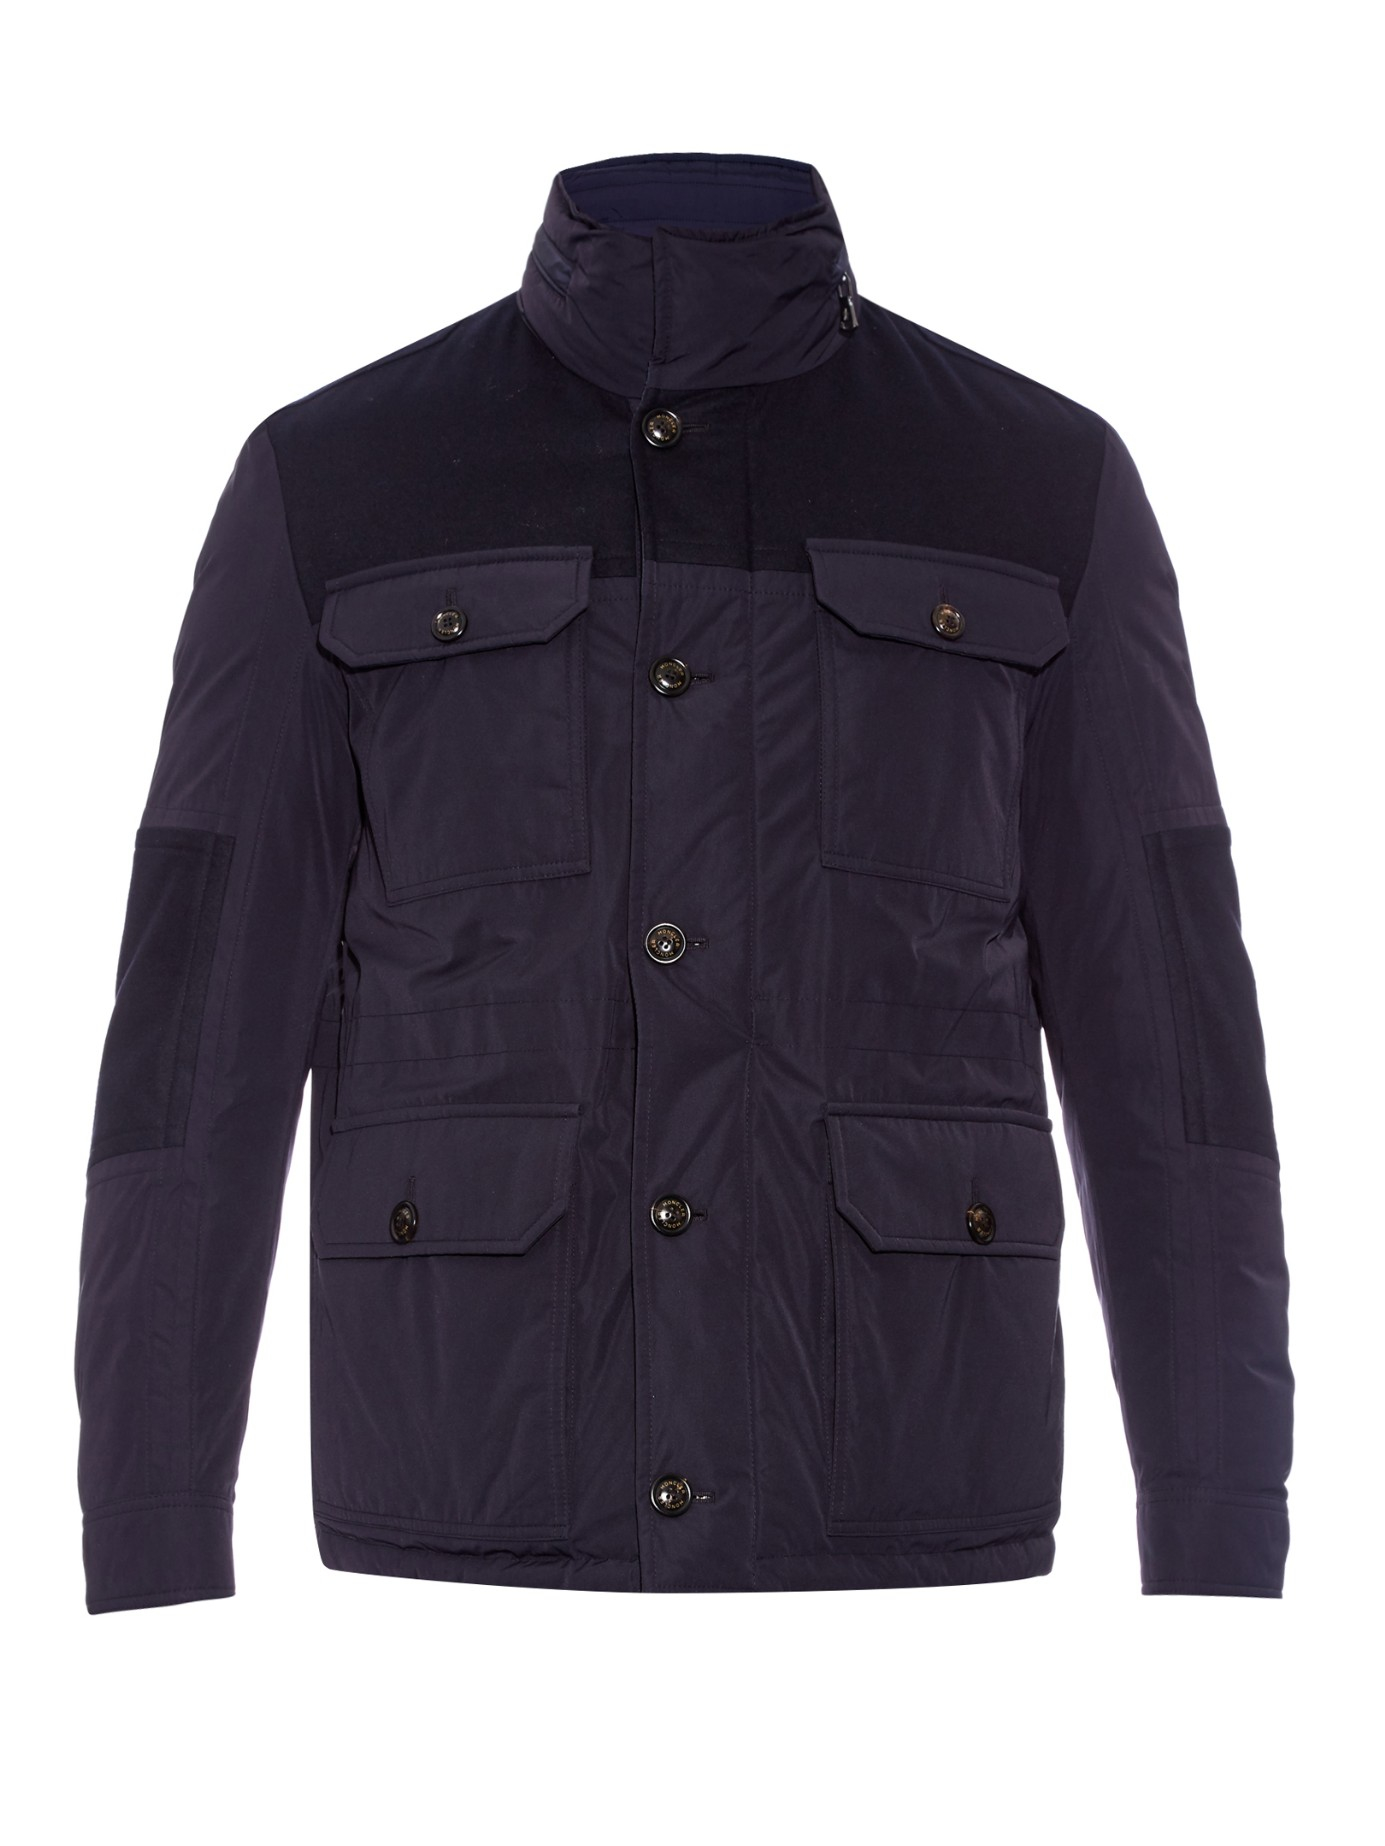 moncler vallier jacket review moncler vallier jacket review ...